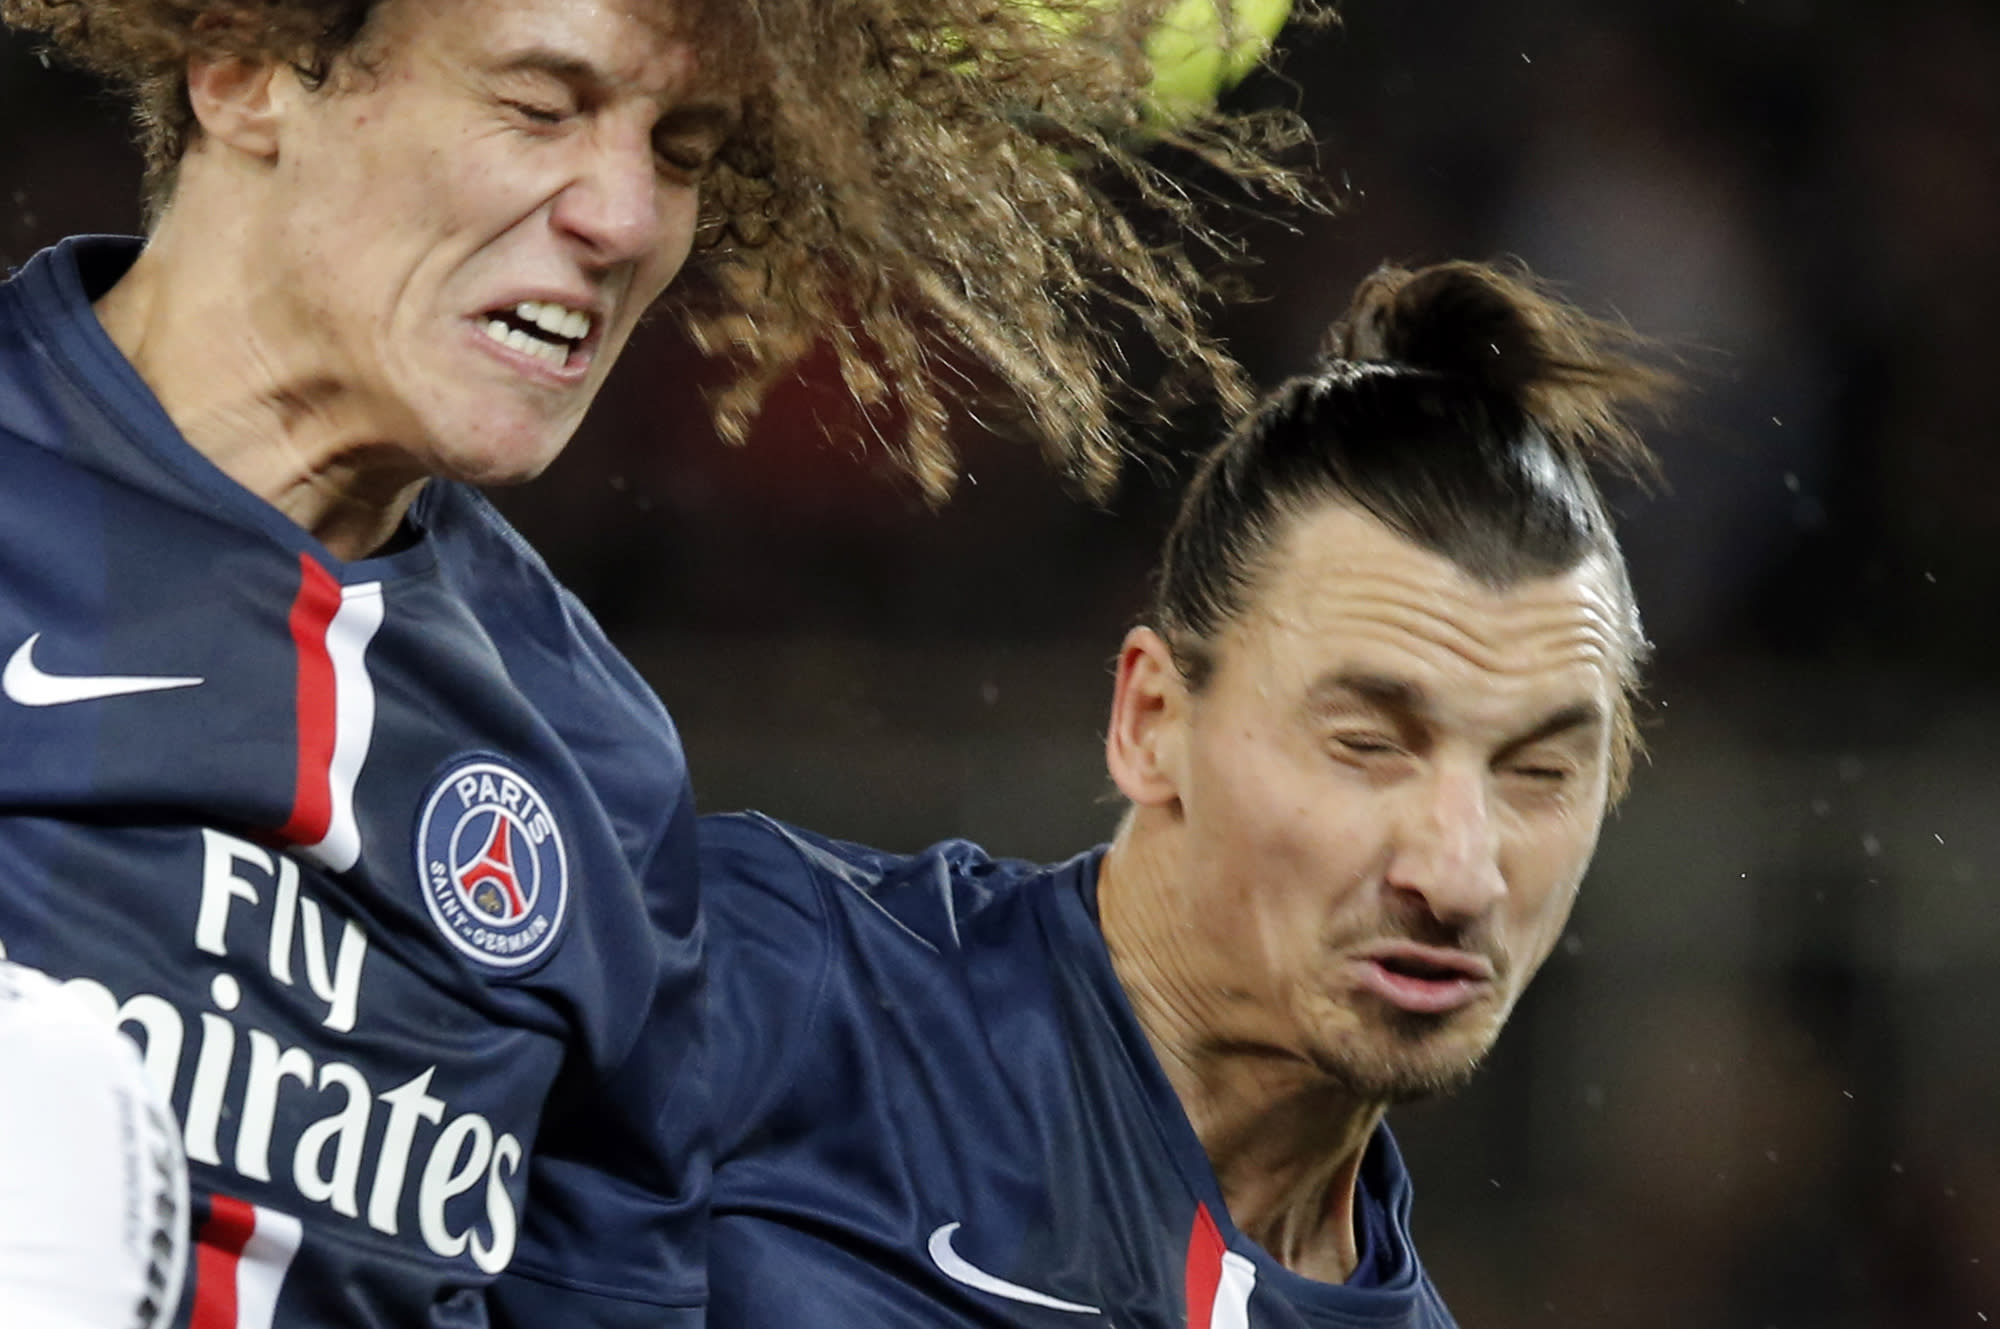 PSG draws 0-0 against Montpellier amid booing